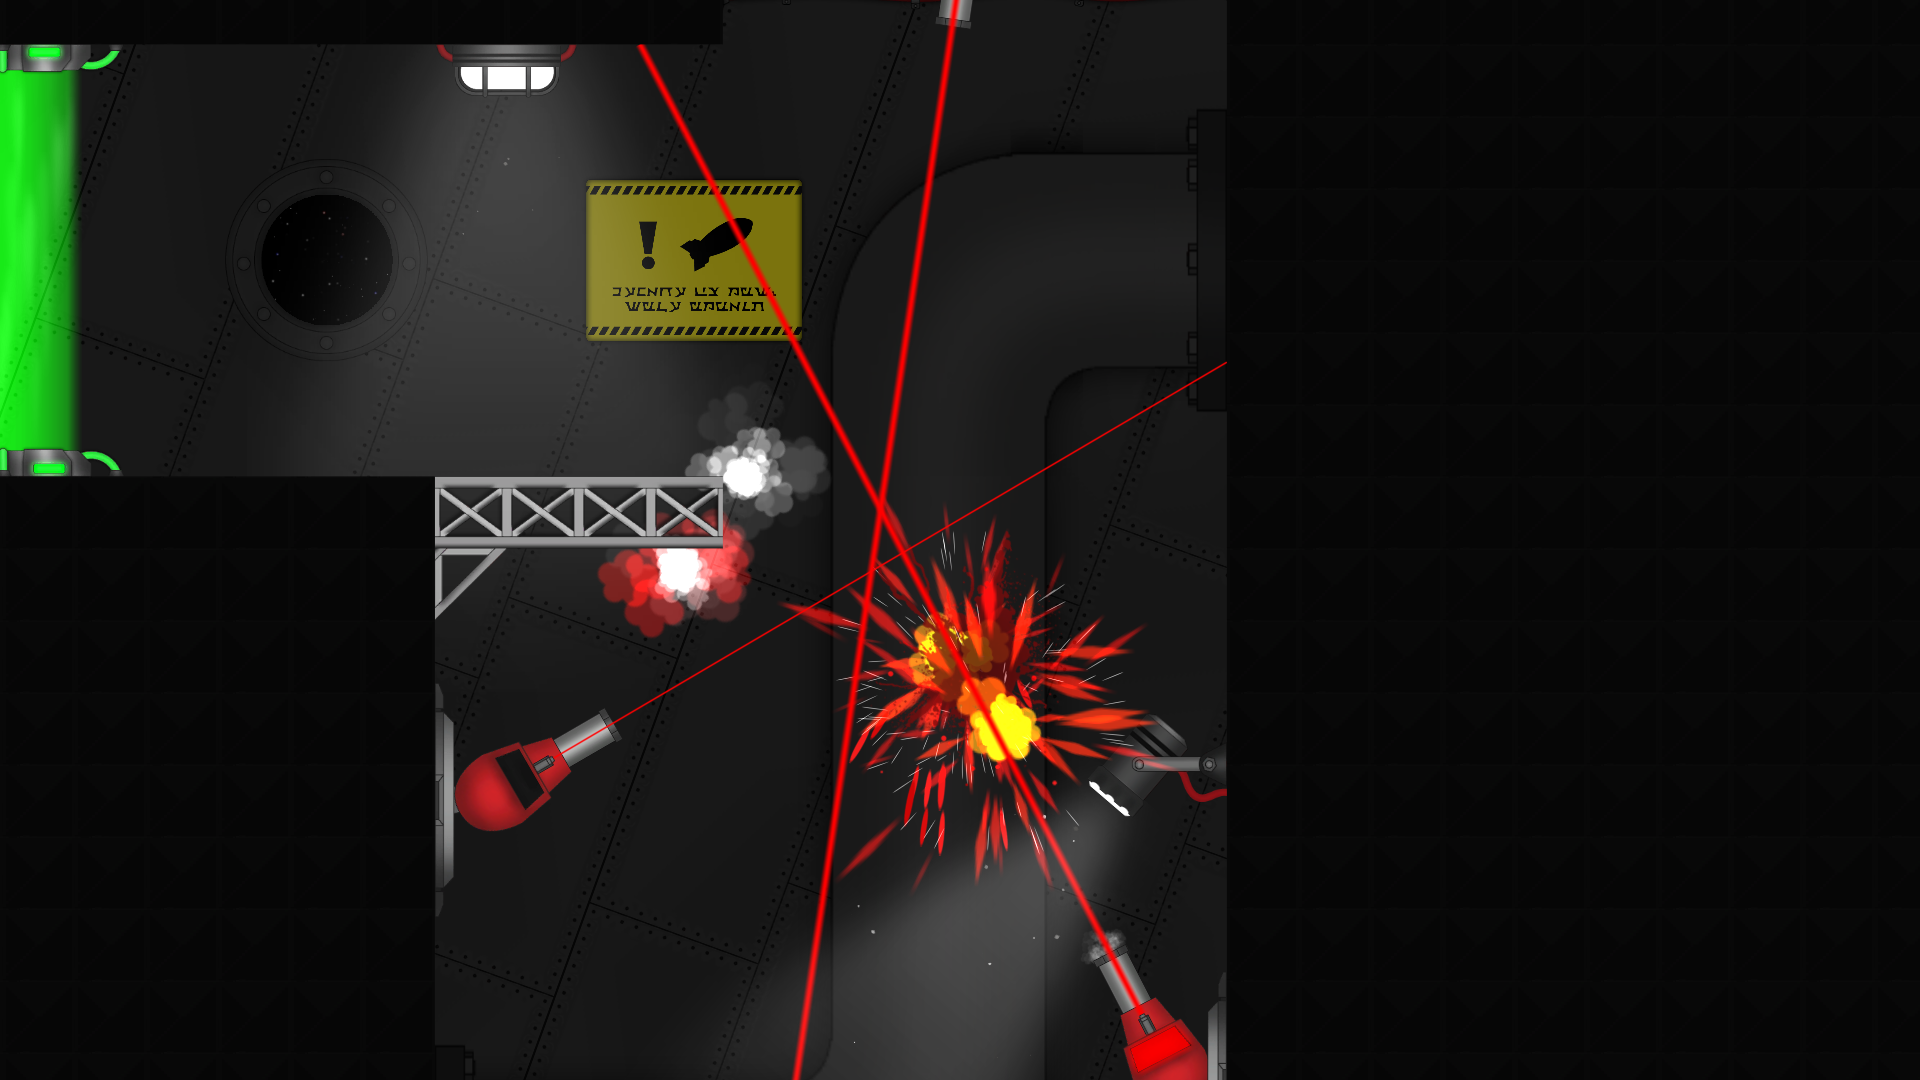 Oops too slow... Those missiles sure pack an explosive punch.